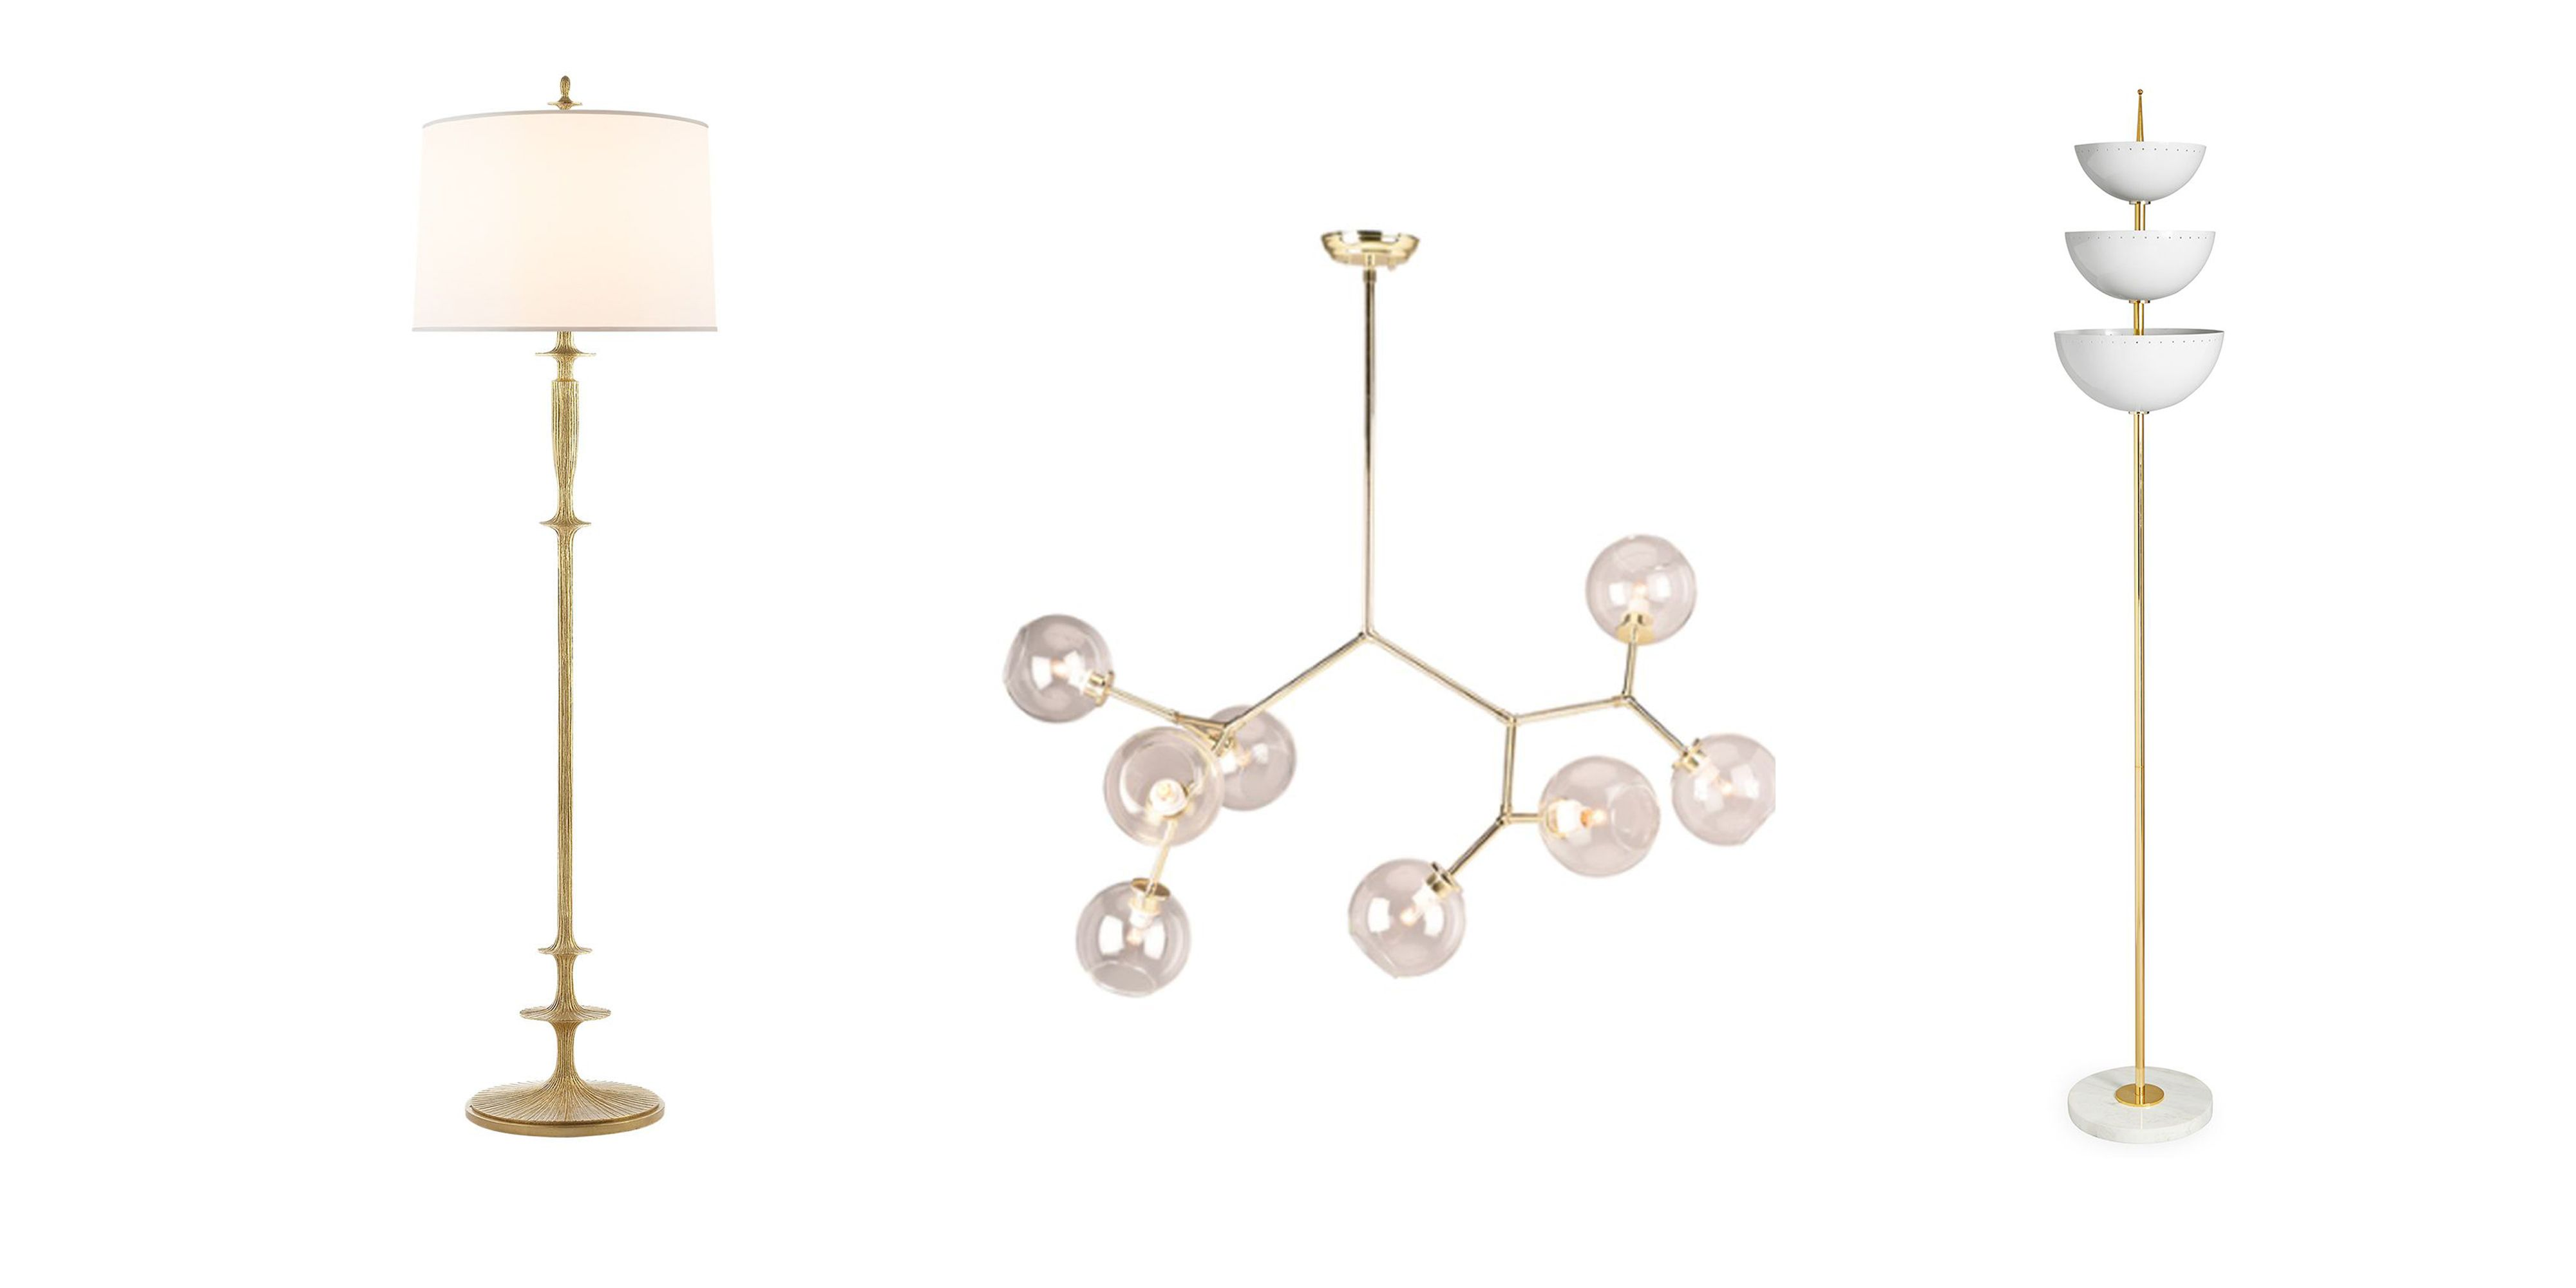 20+ Light Fixtures to Take Your Living Room to the Next Level